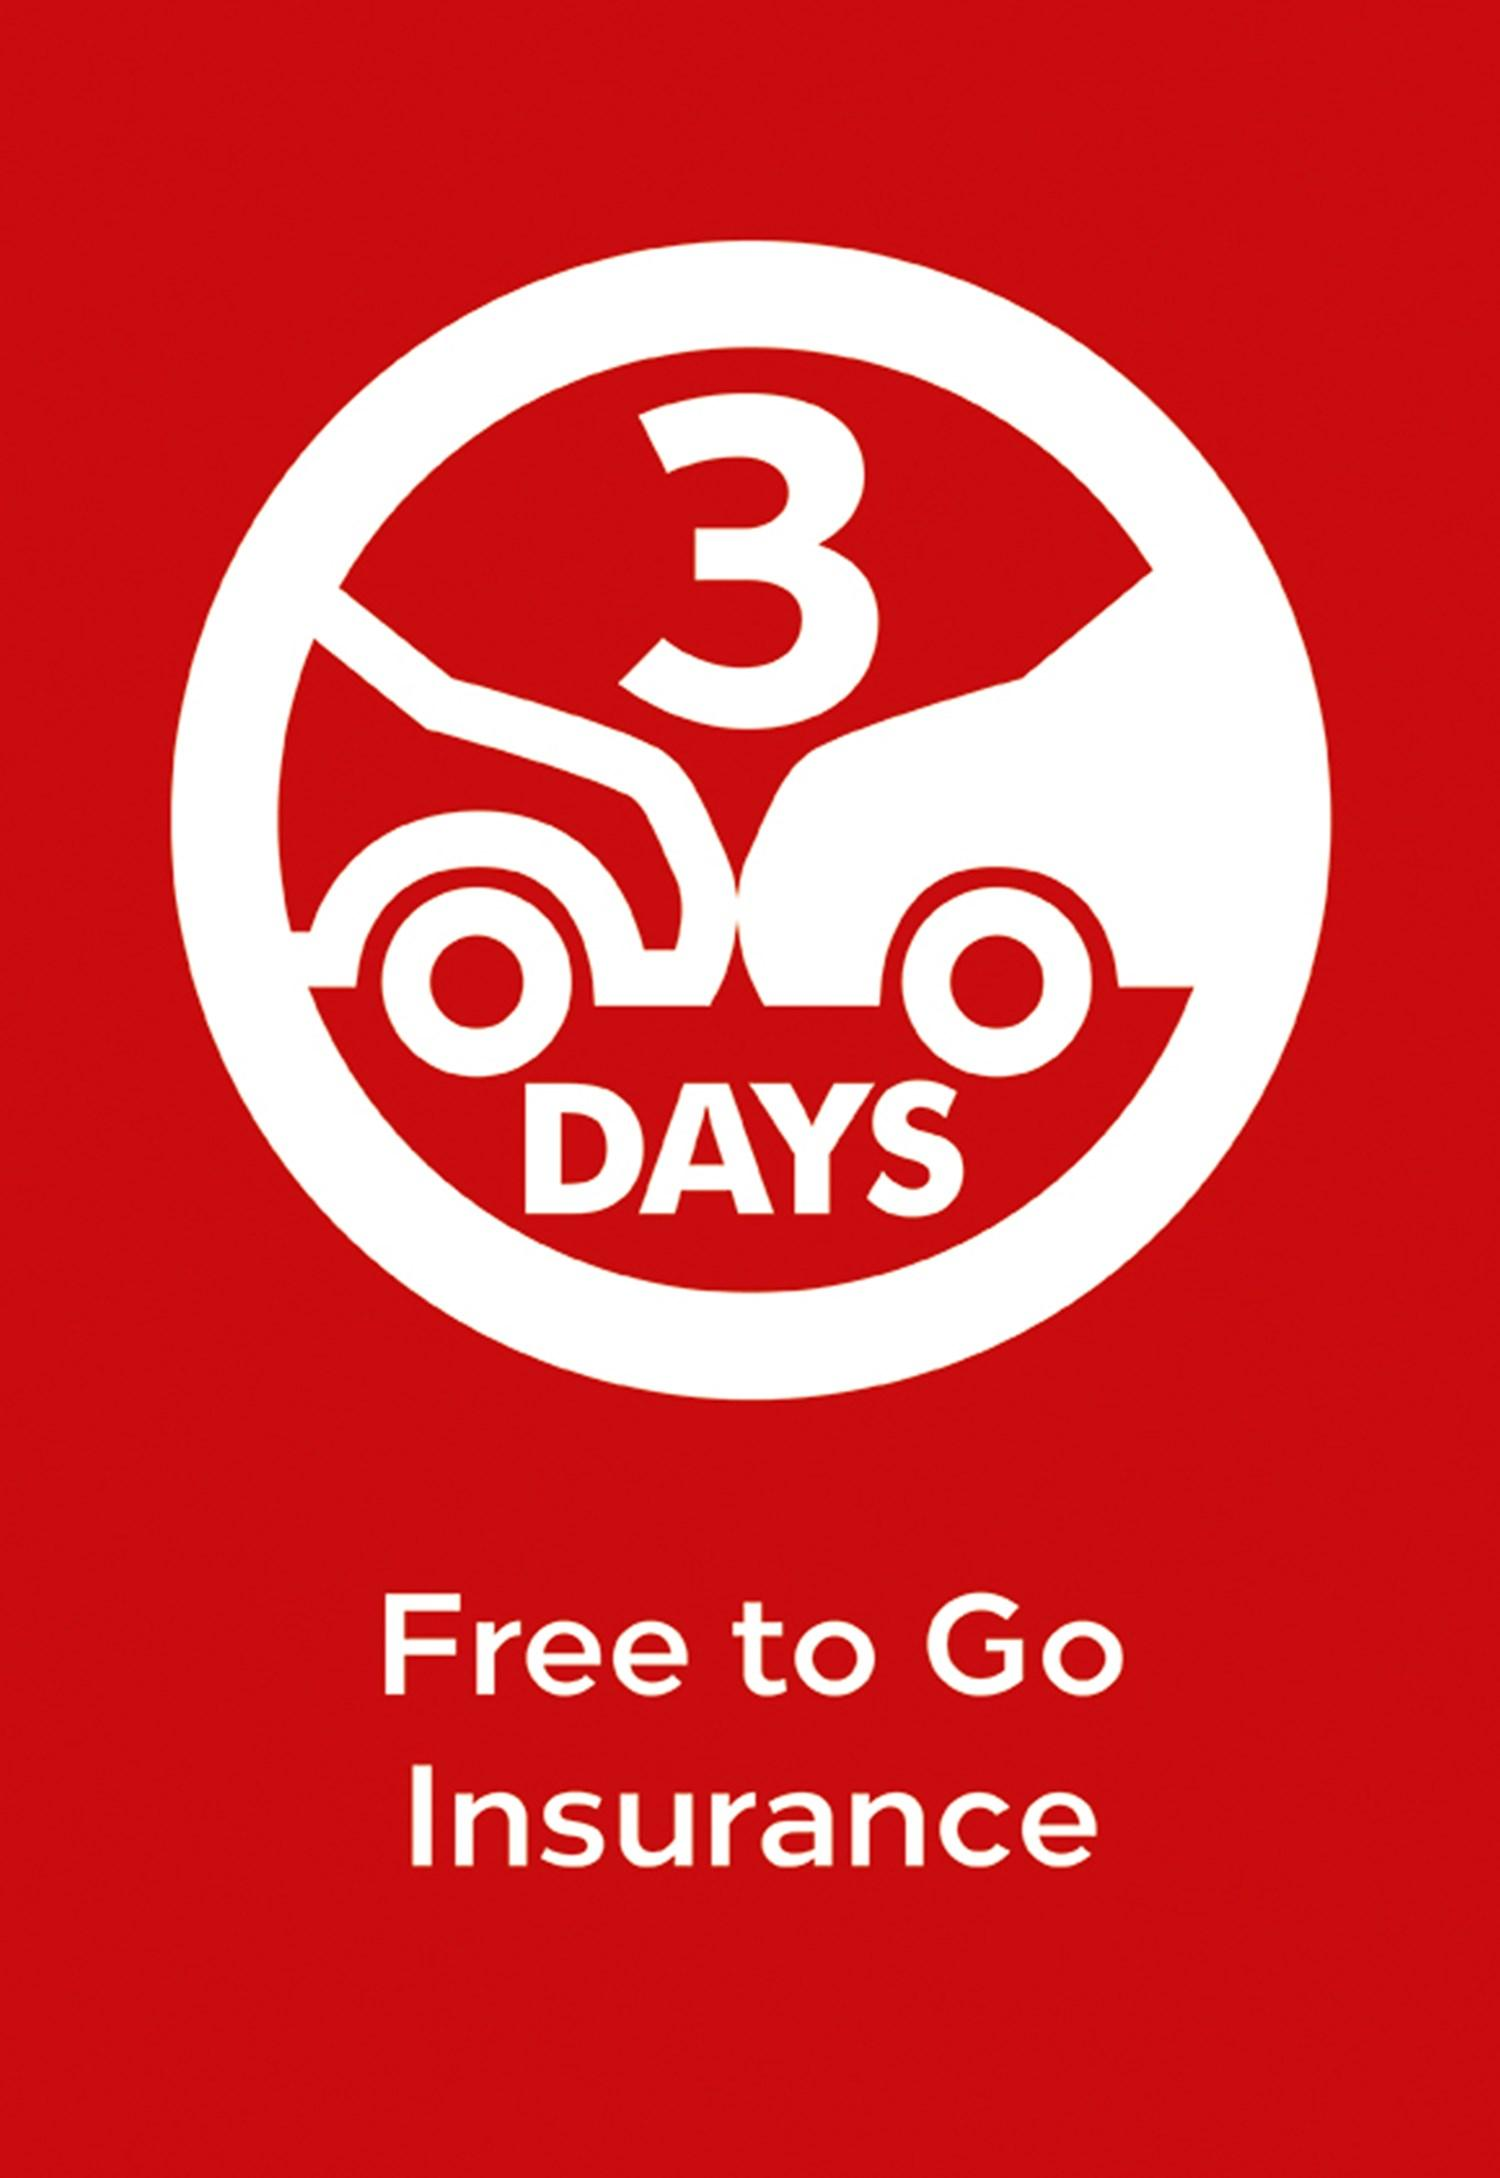 Free To Go Insurance  Wouldn't it be great to buy a car and drive it off the forecourt on the same day? Well, at Network Q you can with our free 3 day insurance policy, Free to go.